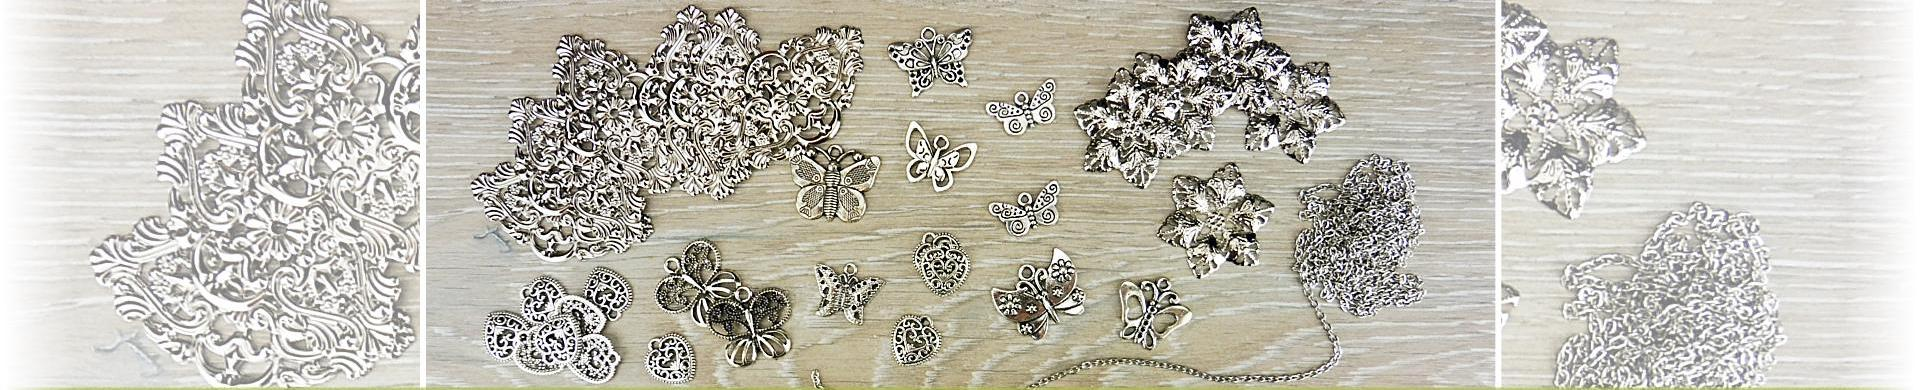 Metal Charms & Embellishments - Silver Tone